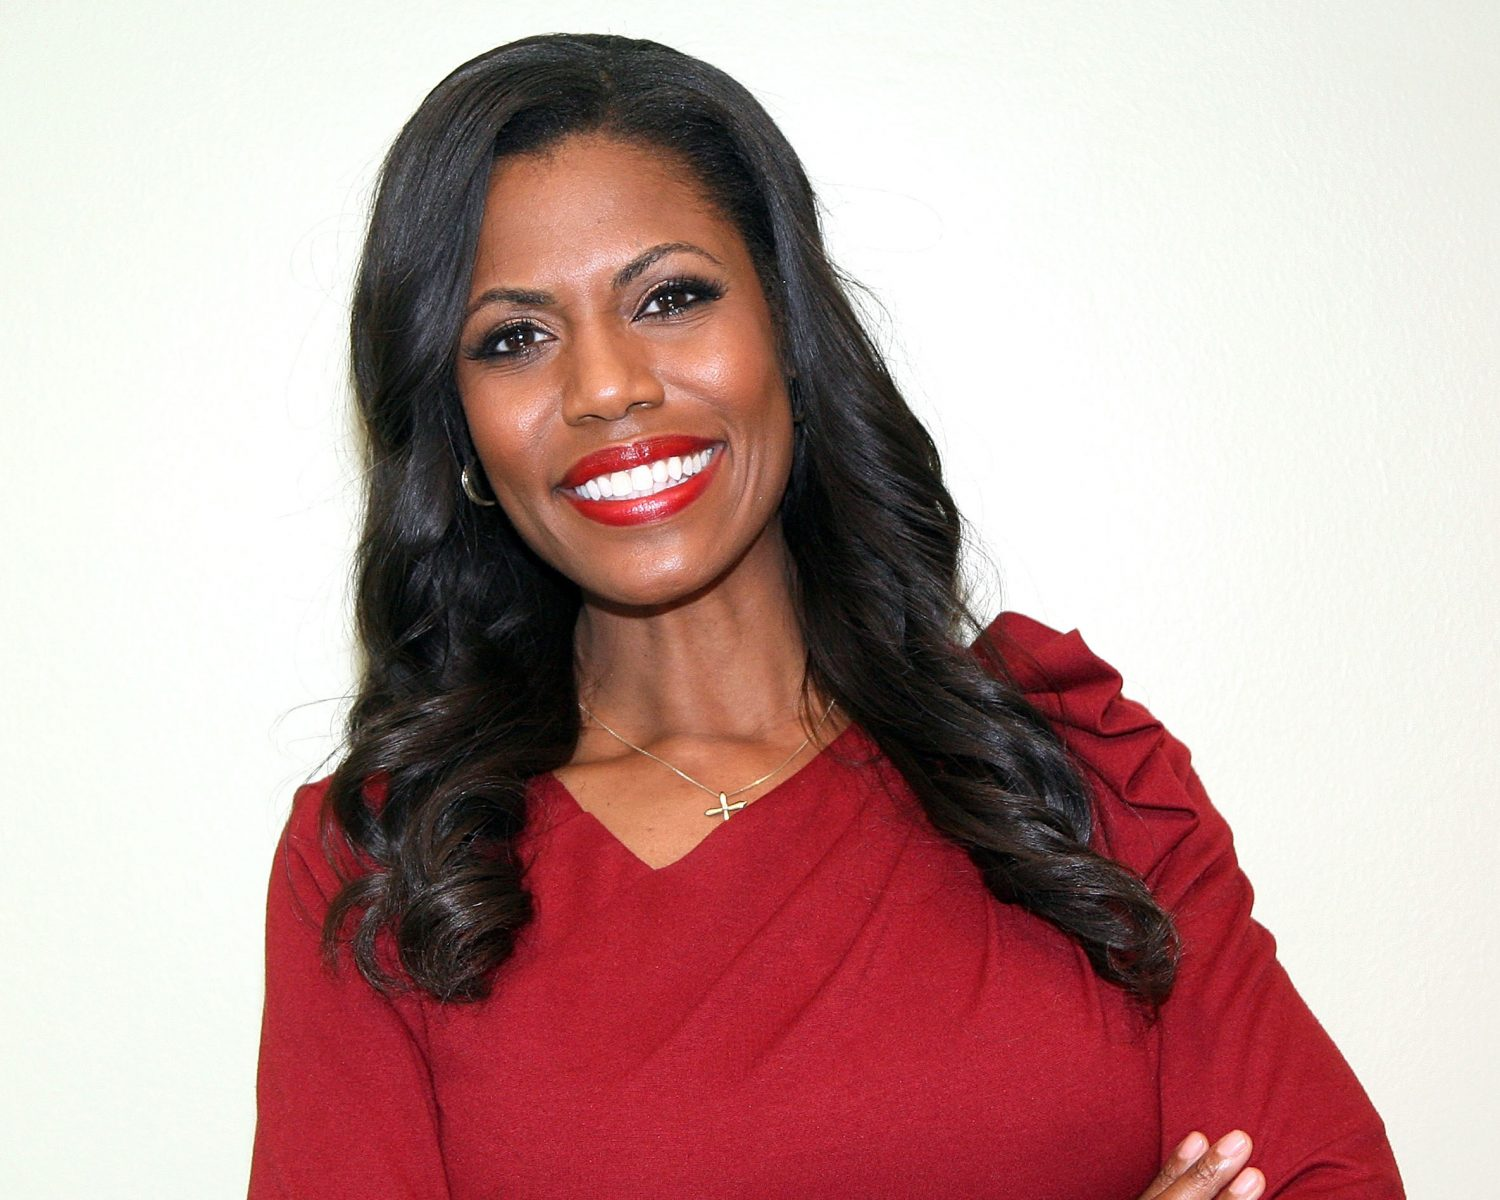 Omarosa Manigault Engagement Ring Wedding Details Revealed